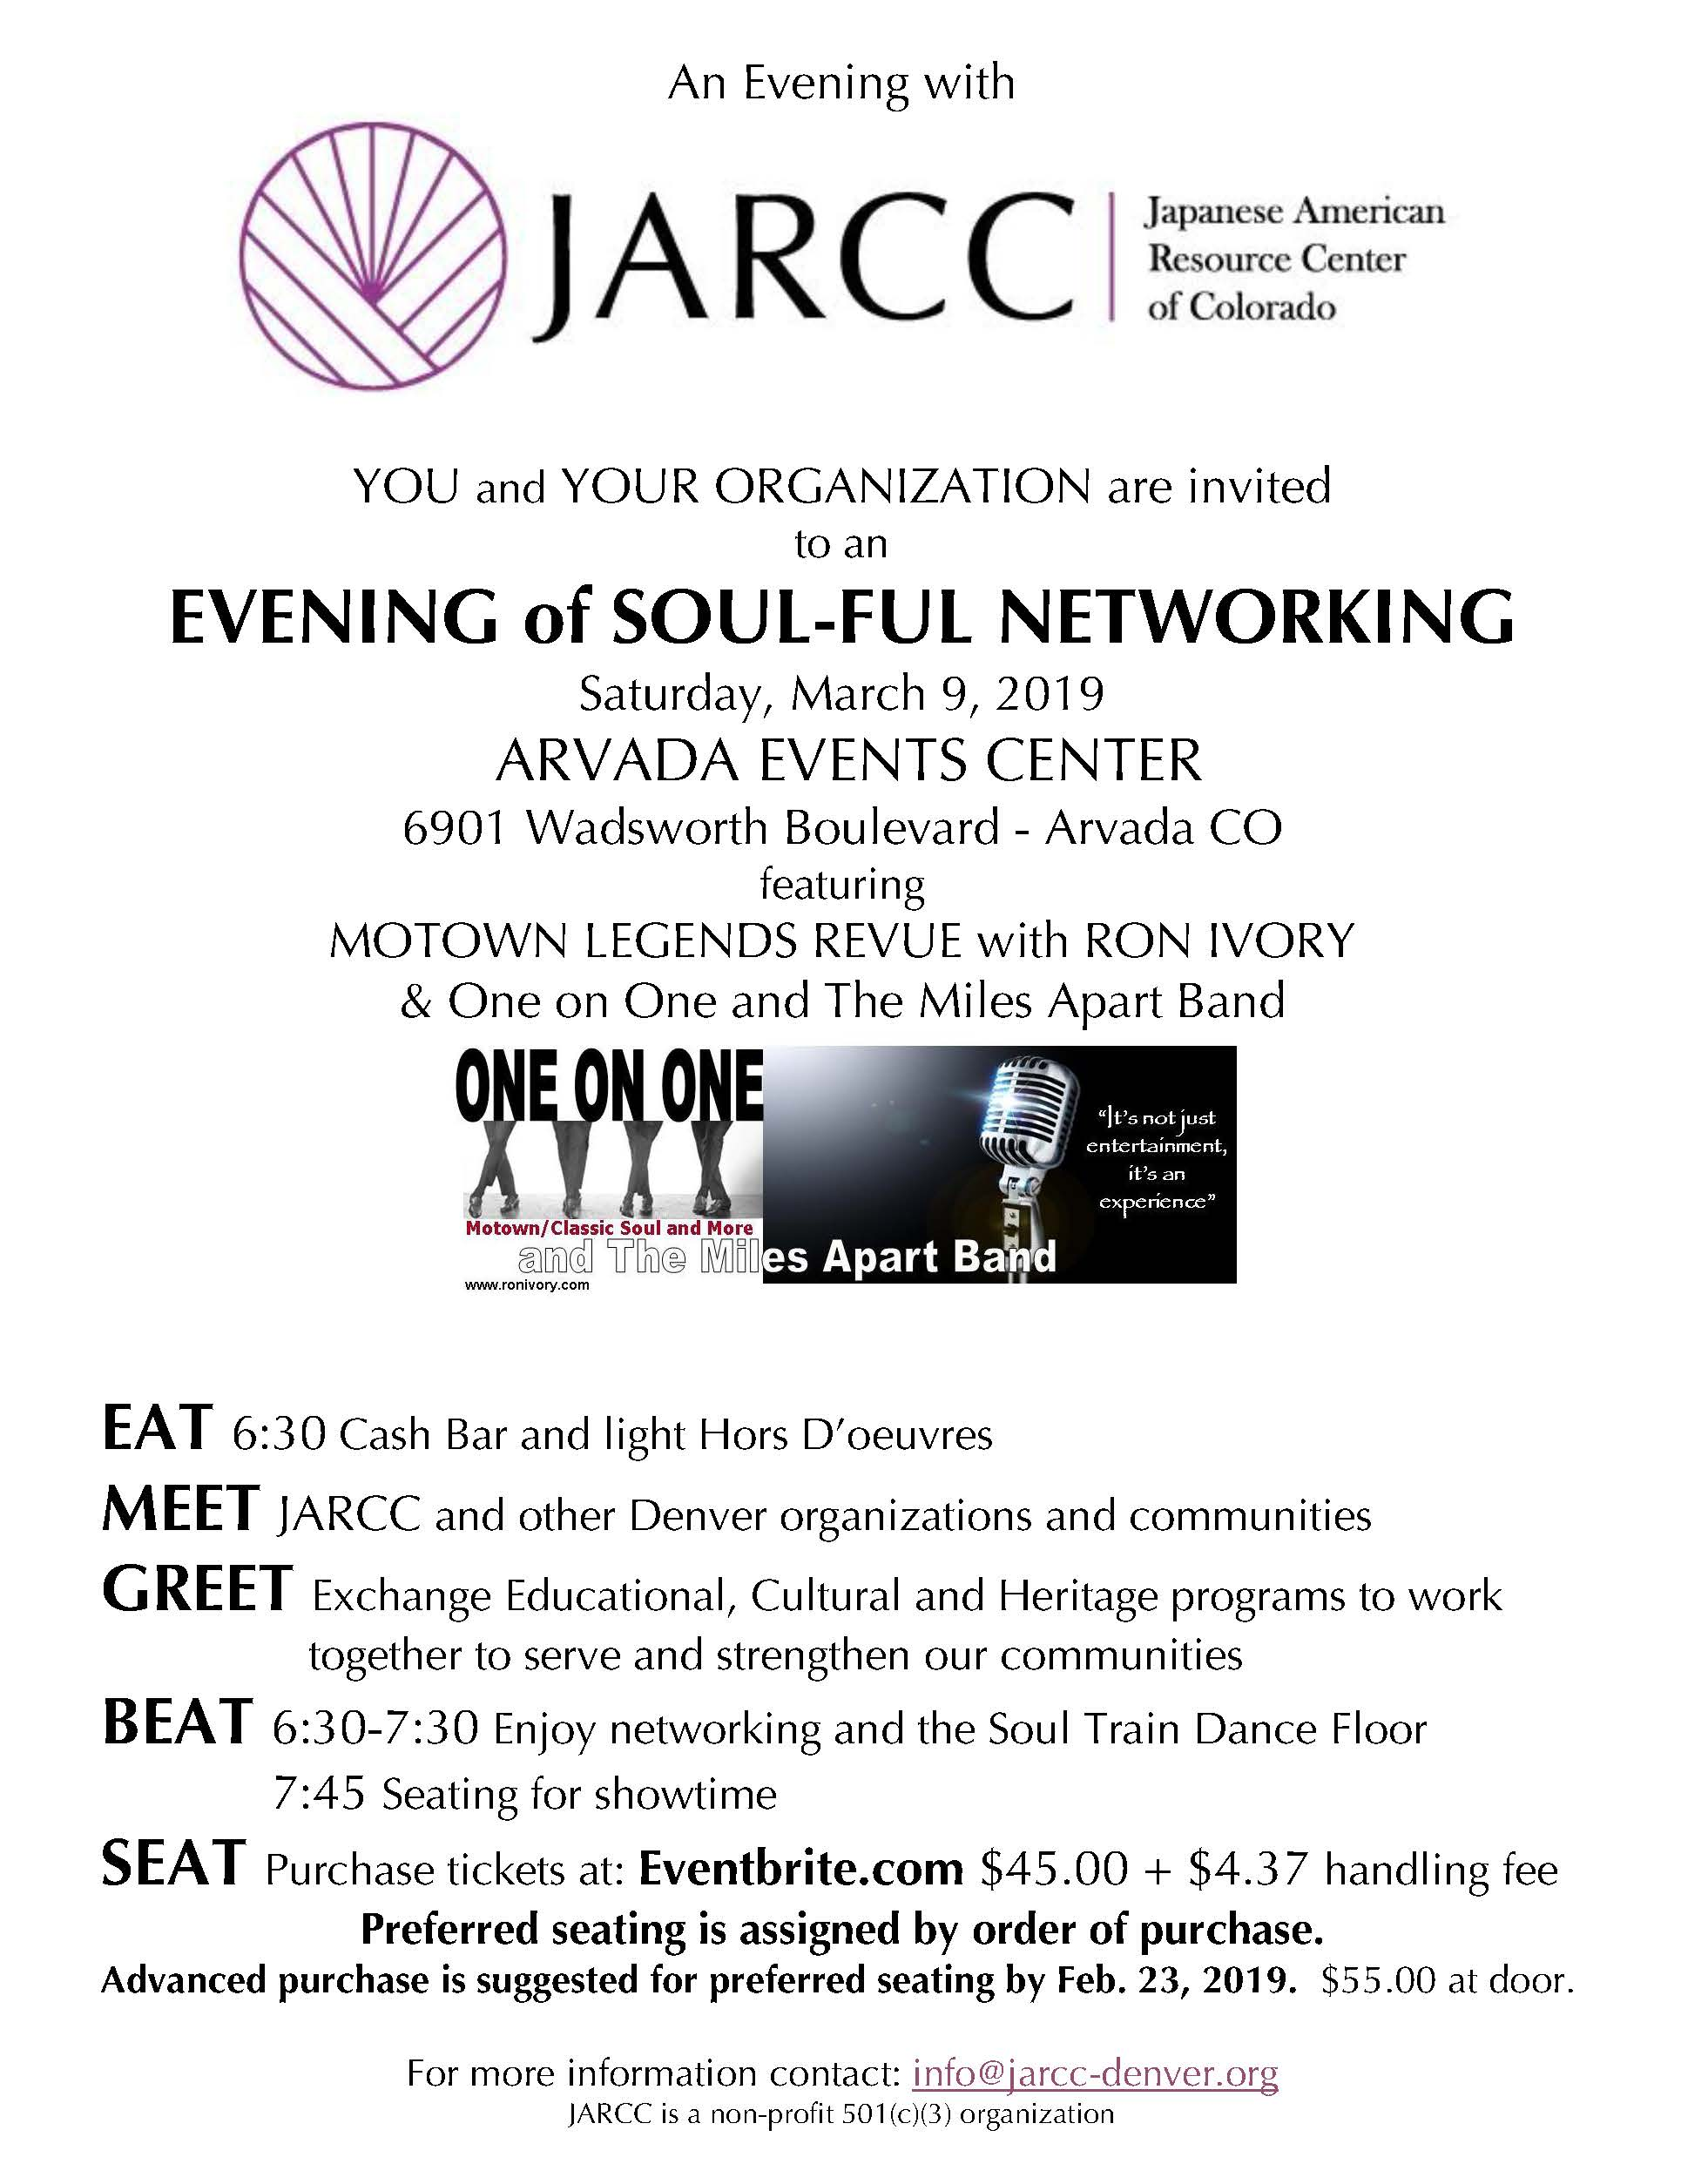 (Canceled) An Evening of Soul-Ful Networking with One on One